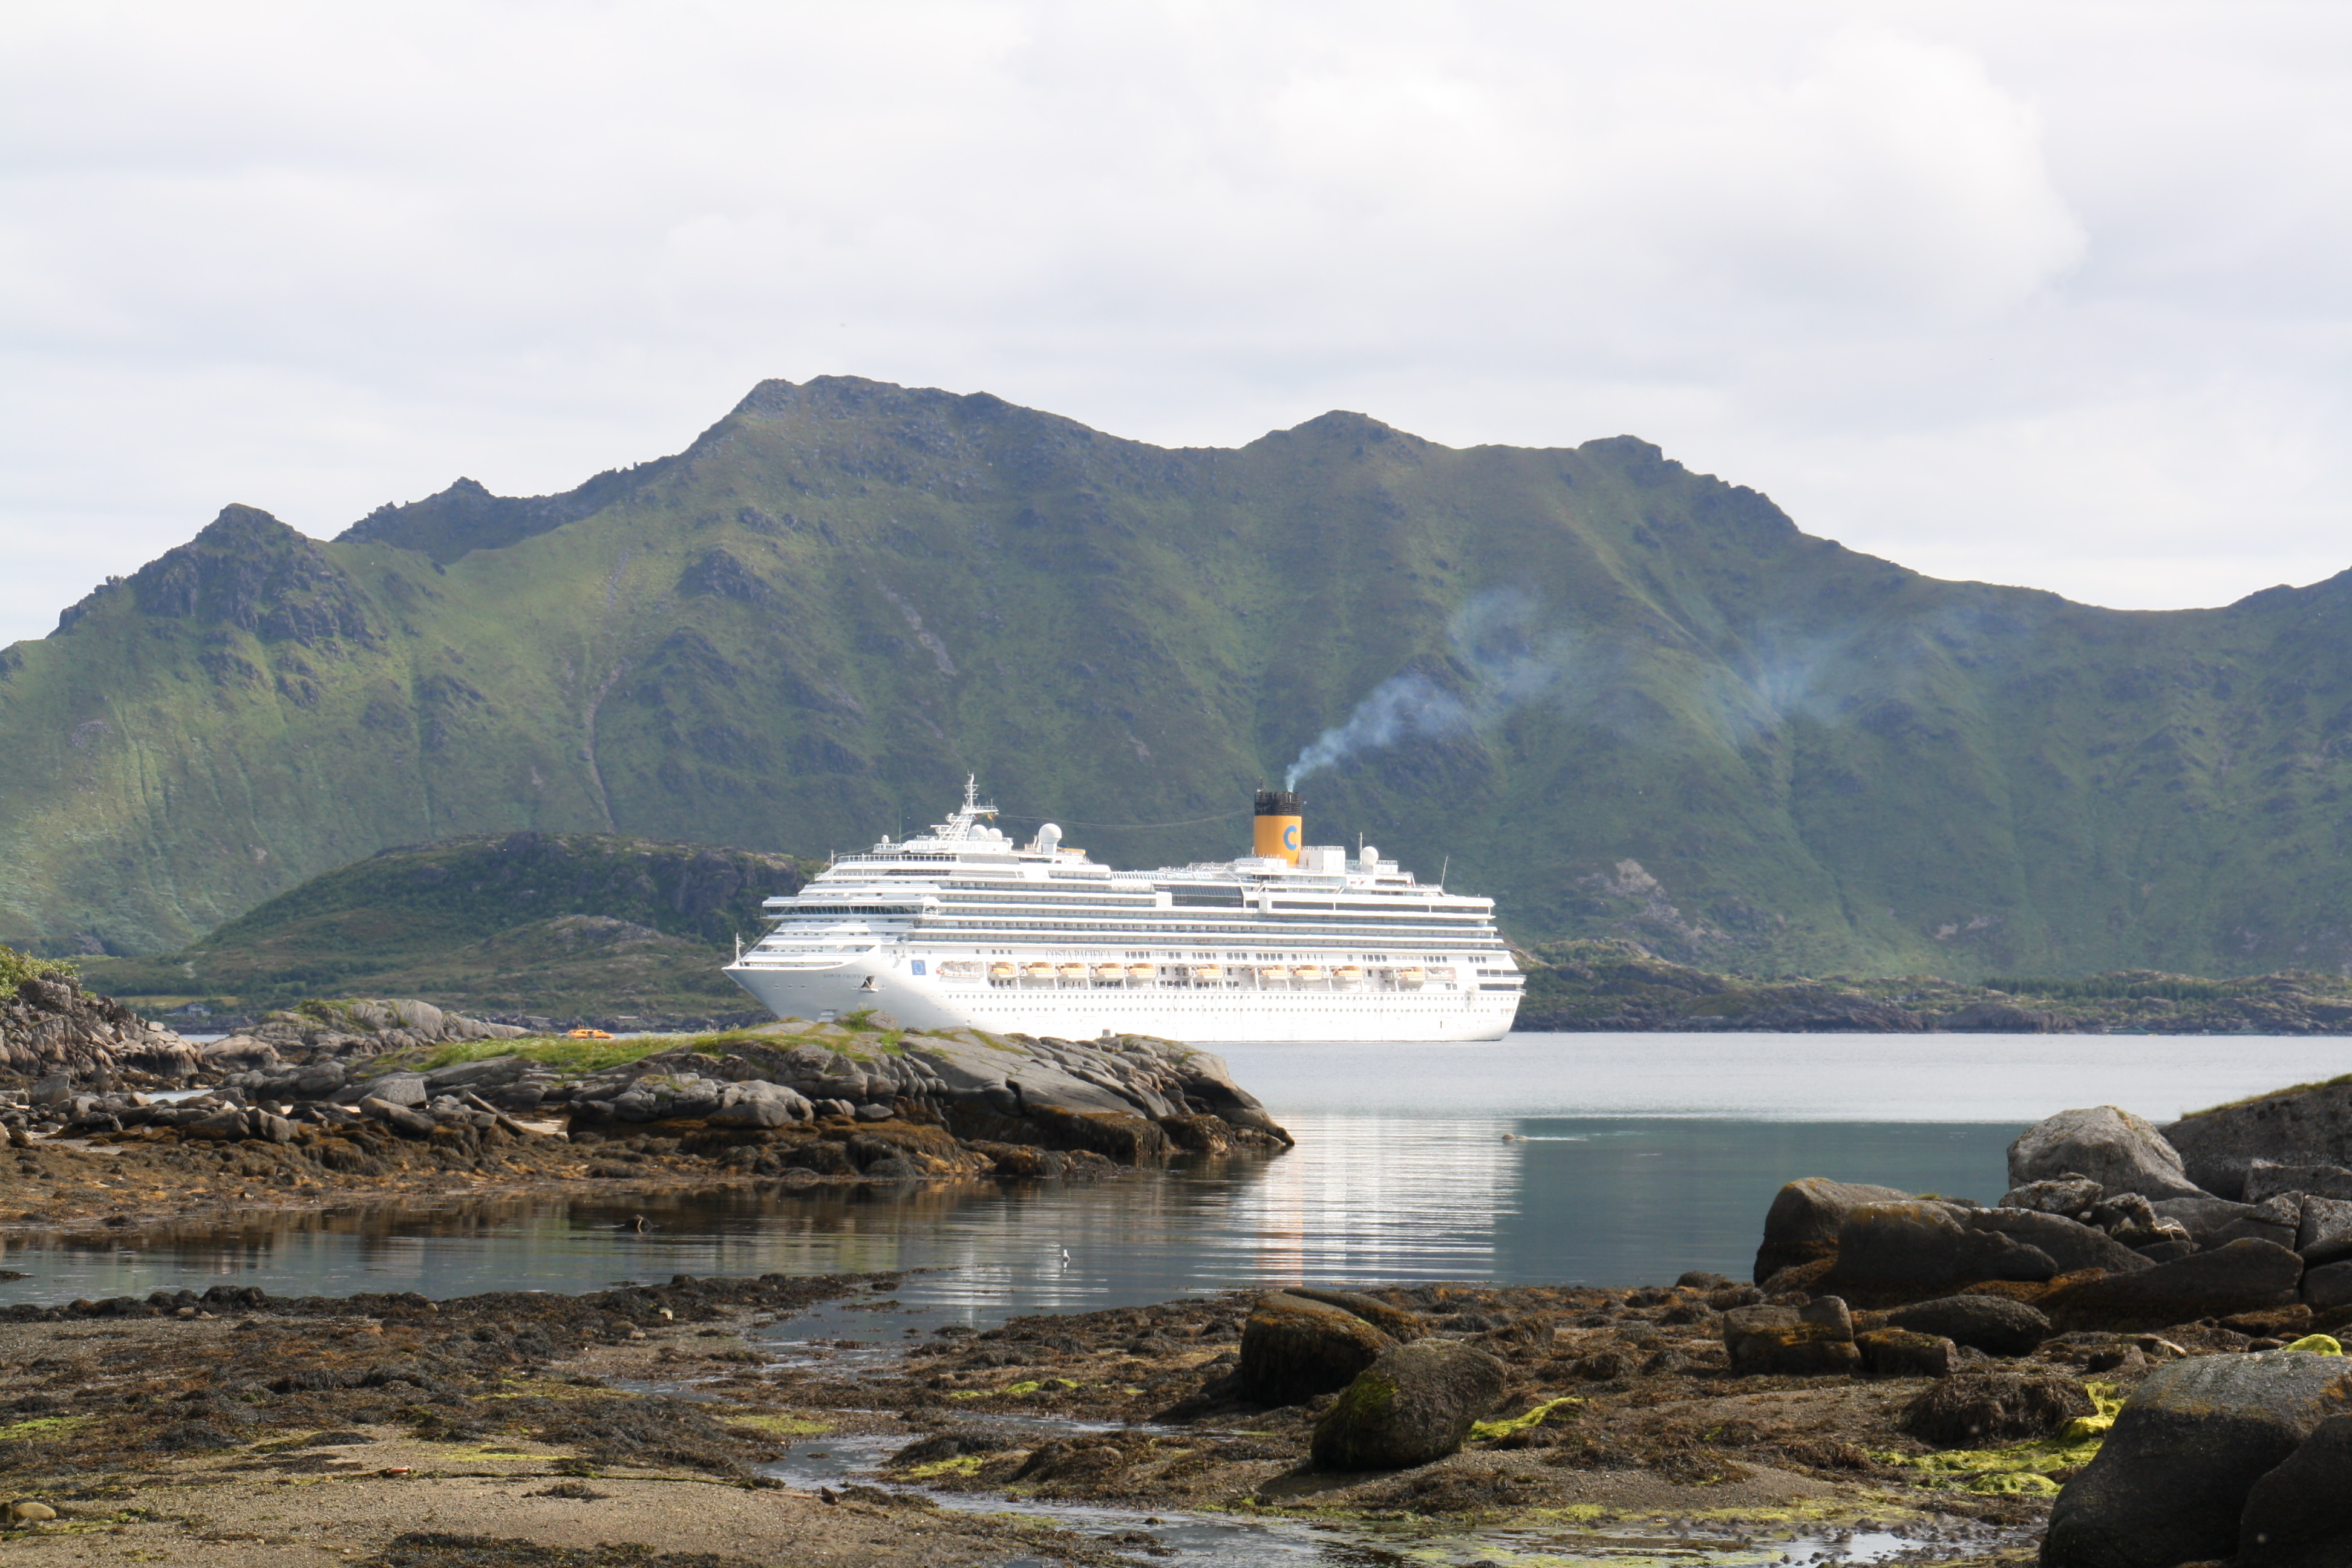 Costa pacifica at Leknes harbour